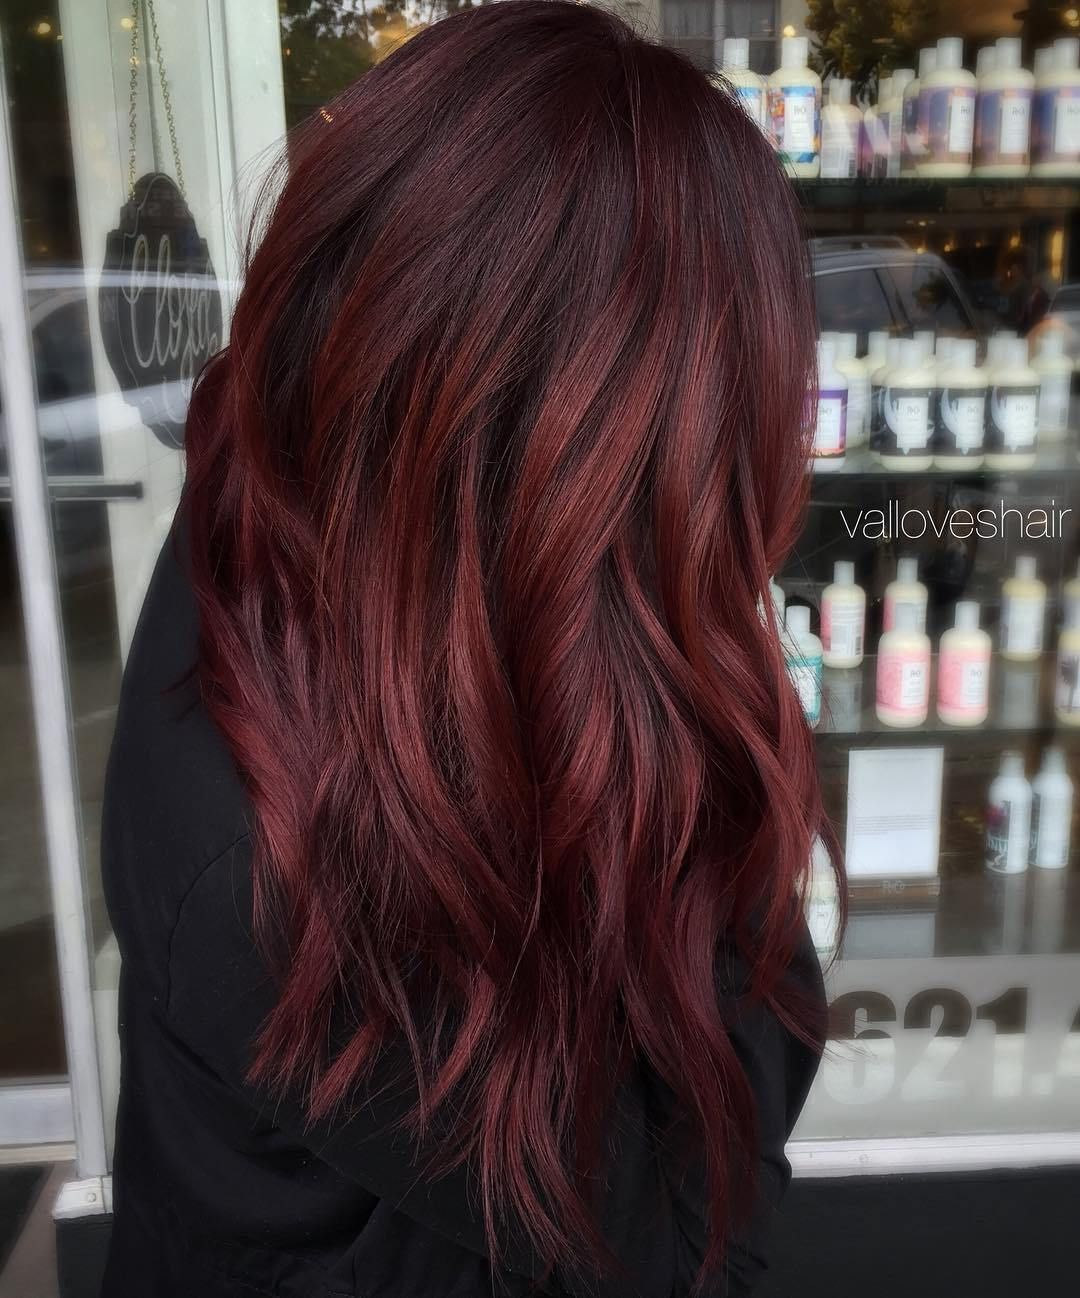 Pin By Tiffany Brooks On Hair In 2018 Pinterest Hair Burgundy